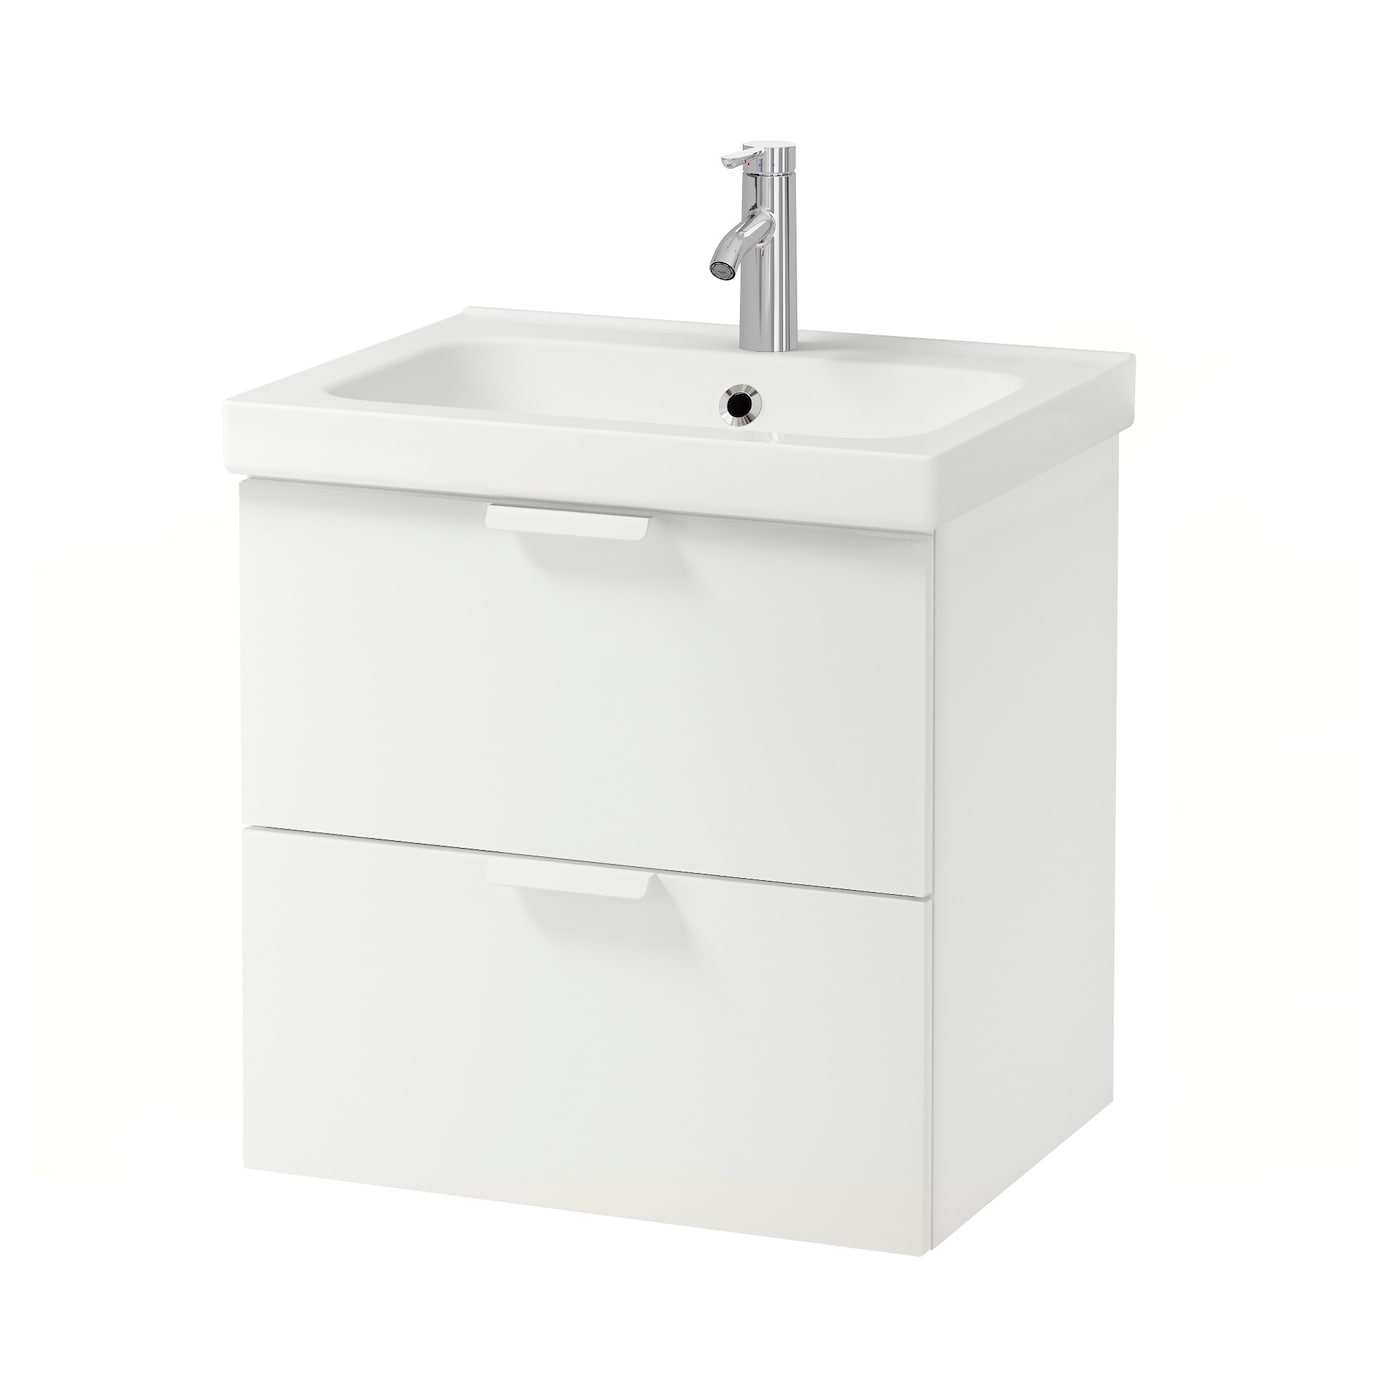 odensvik godmorgon wash stand with 2 drawers white 63 x 49 x 64 cm ikea. Black Bedroom Furniture Sets. Home Design Ideas